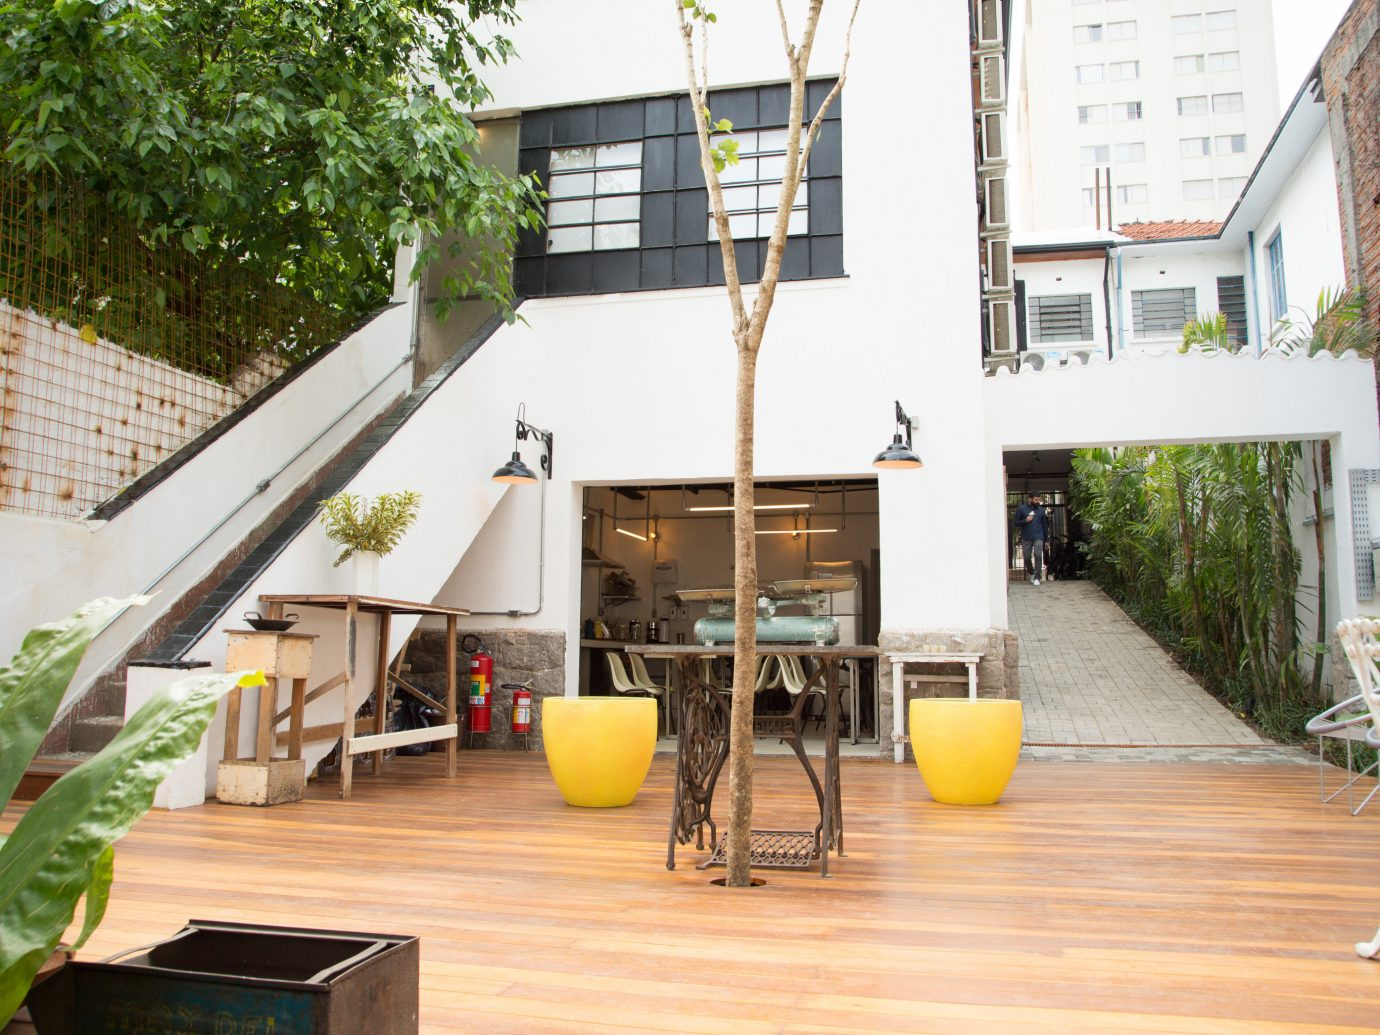 Hotels Architecture house real estate interior design roof outdoor structure loft apartment table Patio Courtyard Balcony furniture backyard